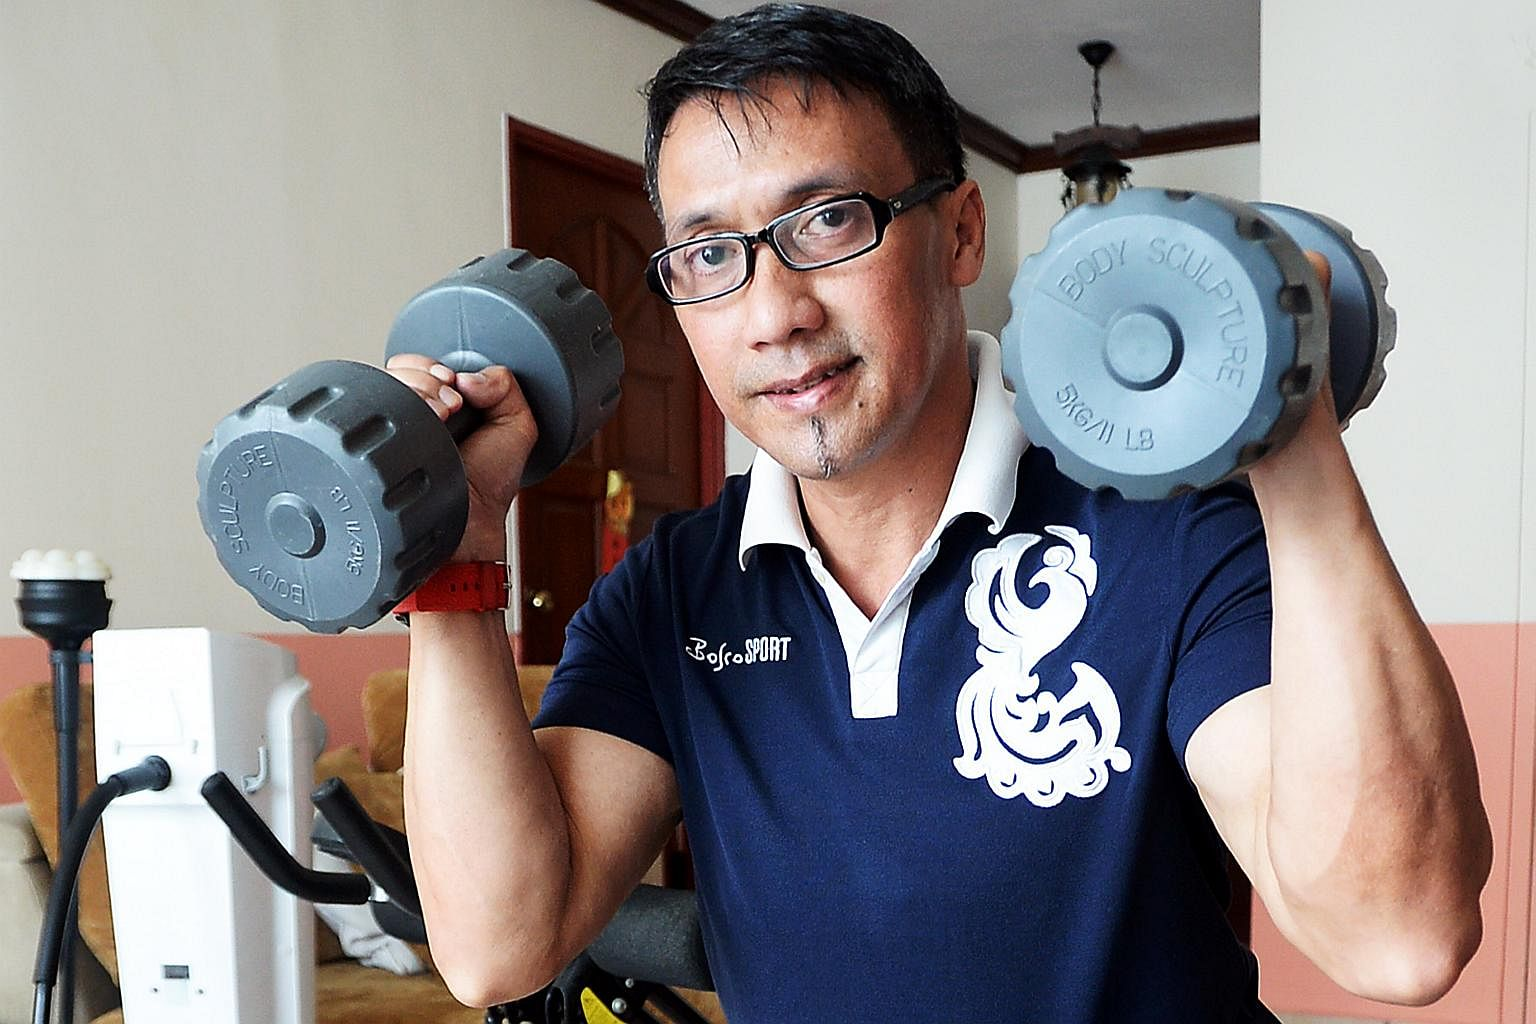 You would never guess I had a stroke', Singapore News & Top